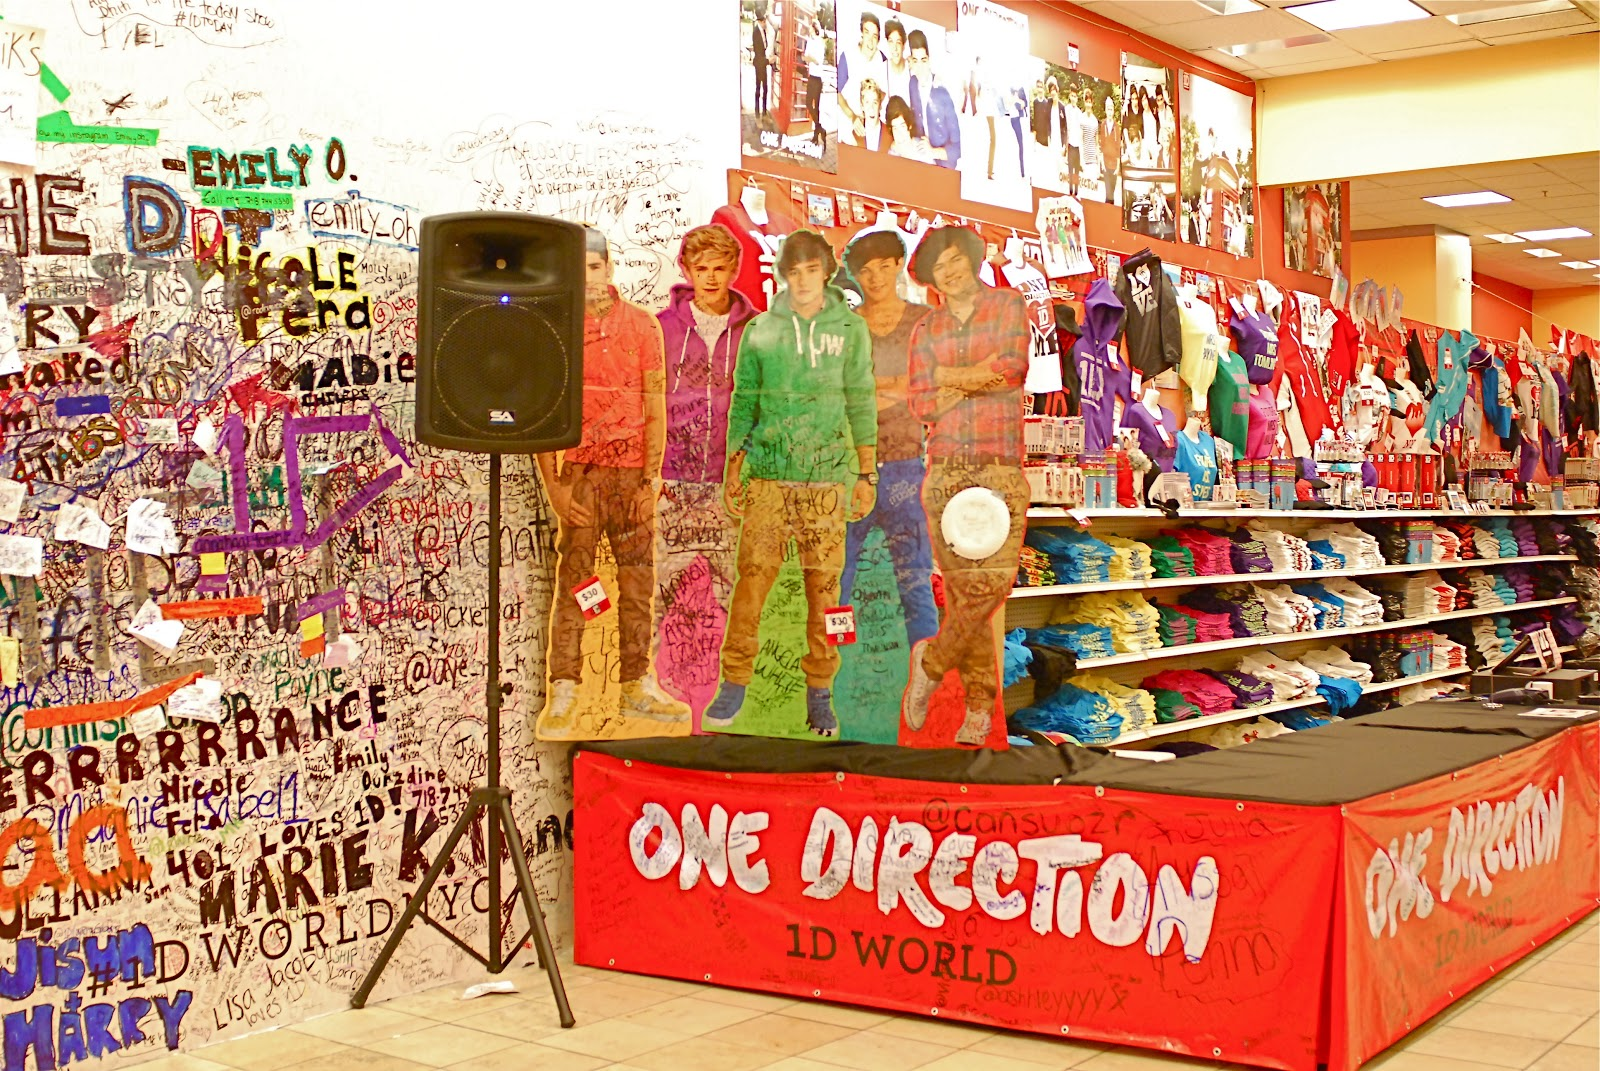 NYC ♥ NYC: 1D WORLD One Direction Pop-Up Store in Manhattan